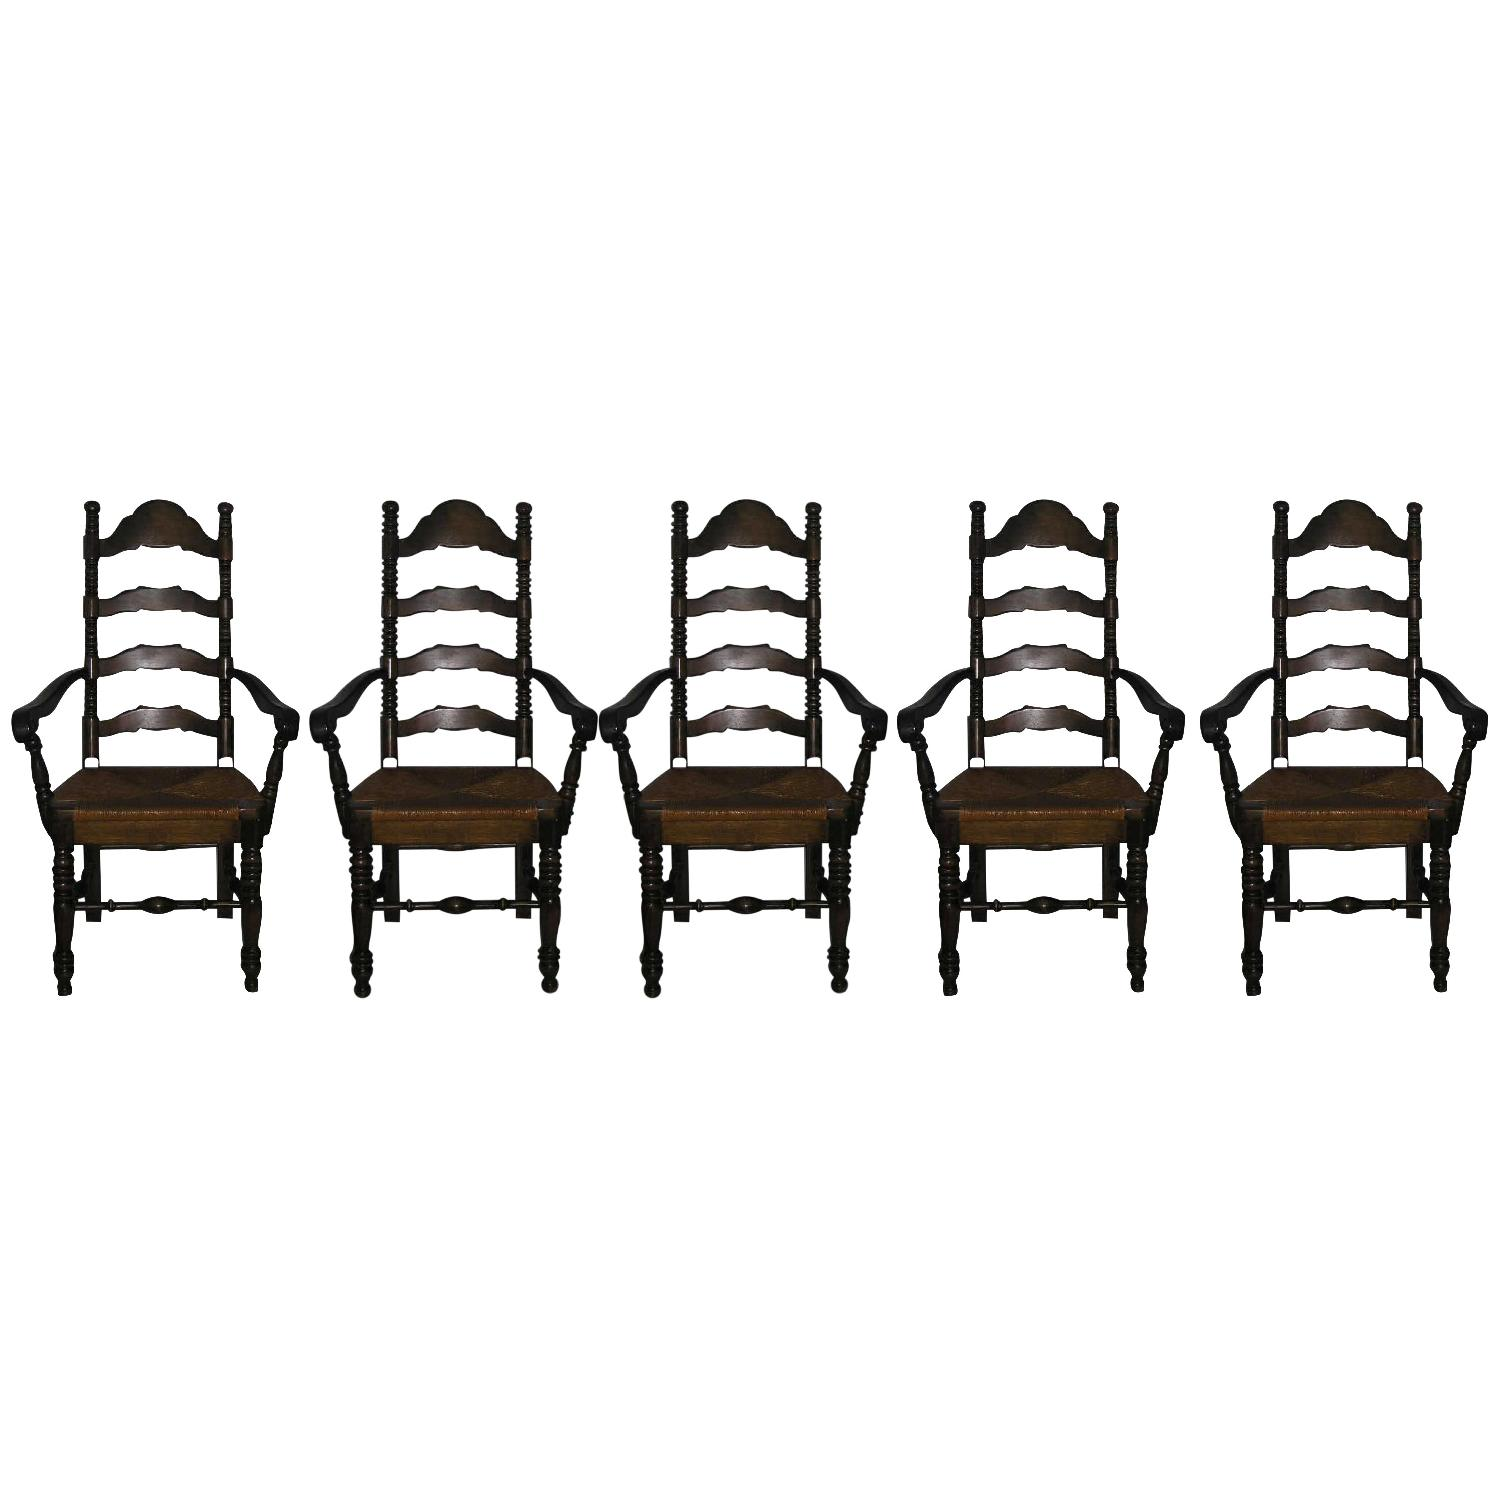 Ethan Allen Vintage Ladderback Rush Seat Chairs -Set of - AptDeco